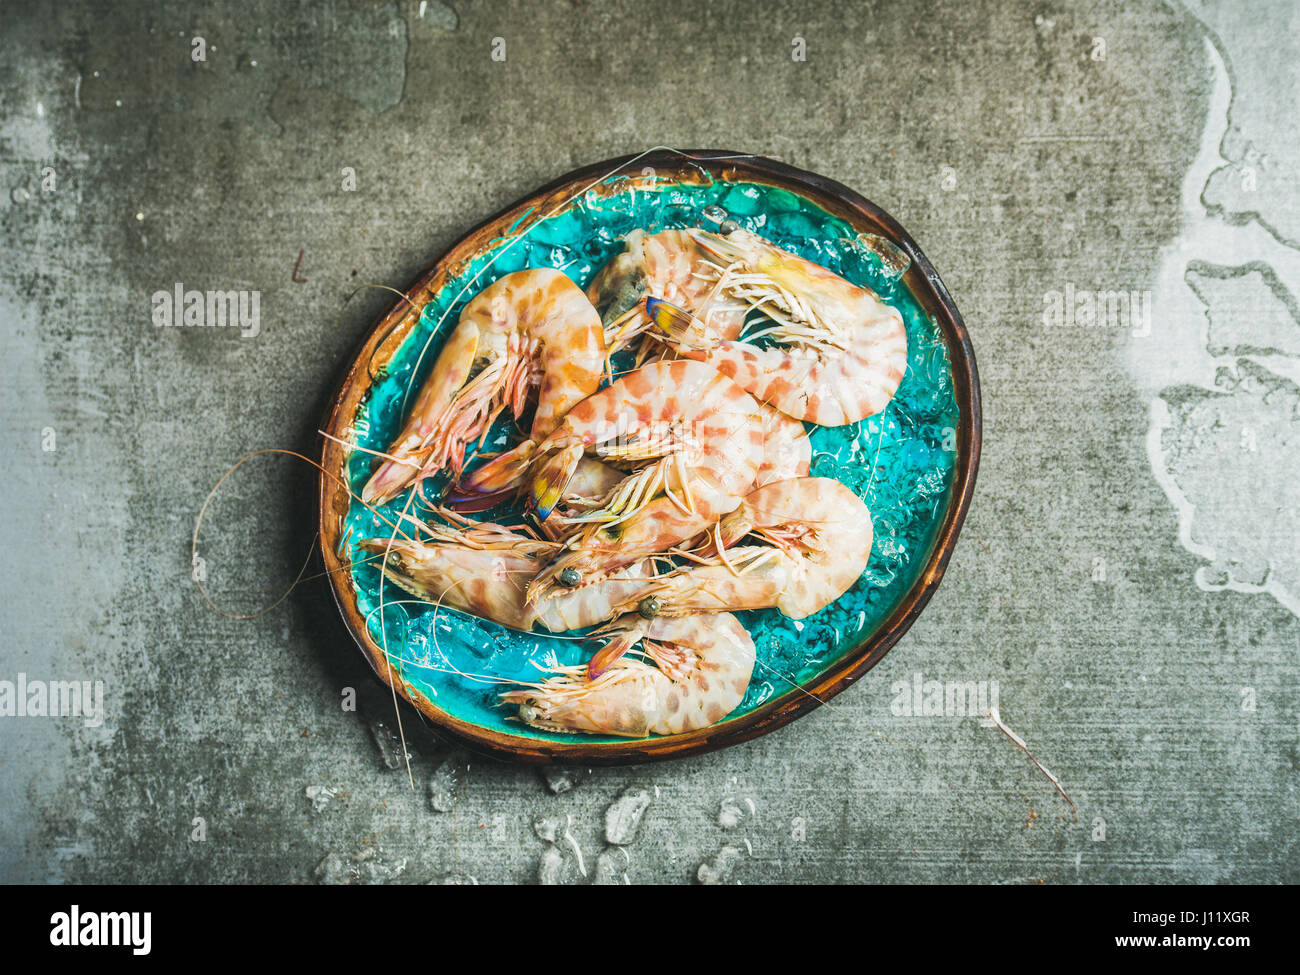 Raw uncooked tiger prawns on chipped ice, copy space - Stock Image